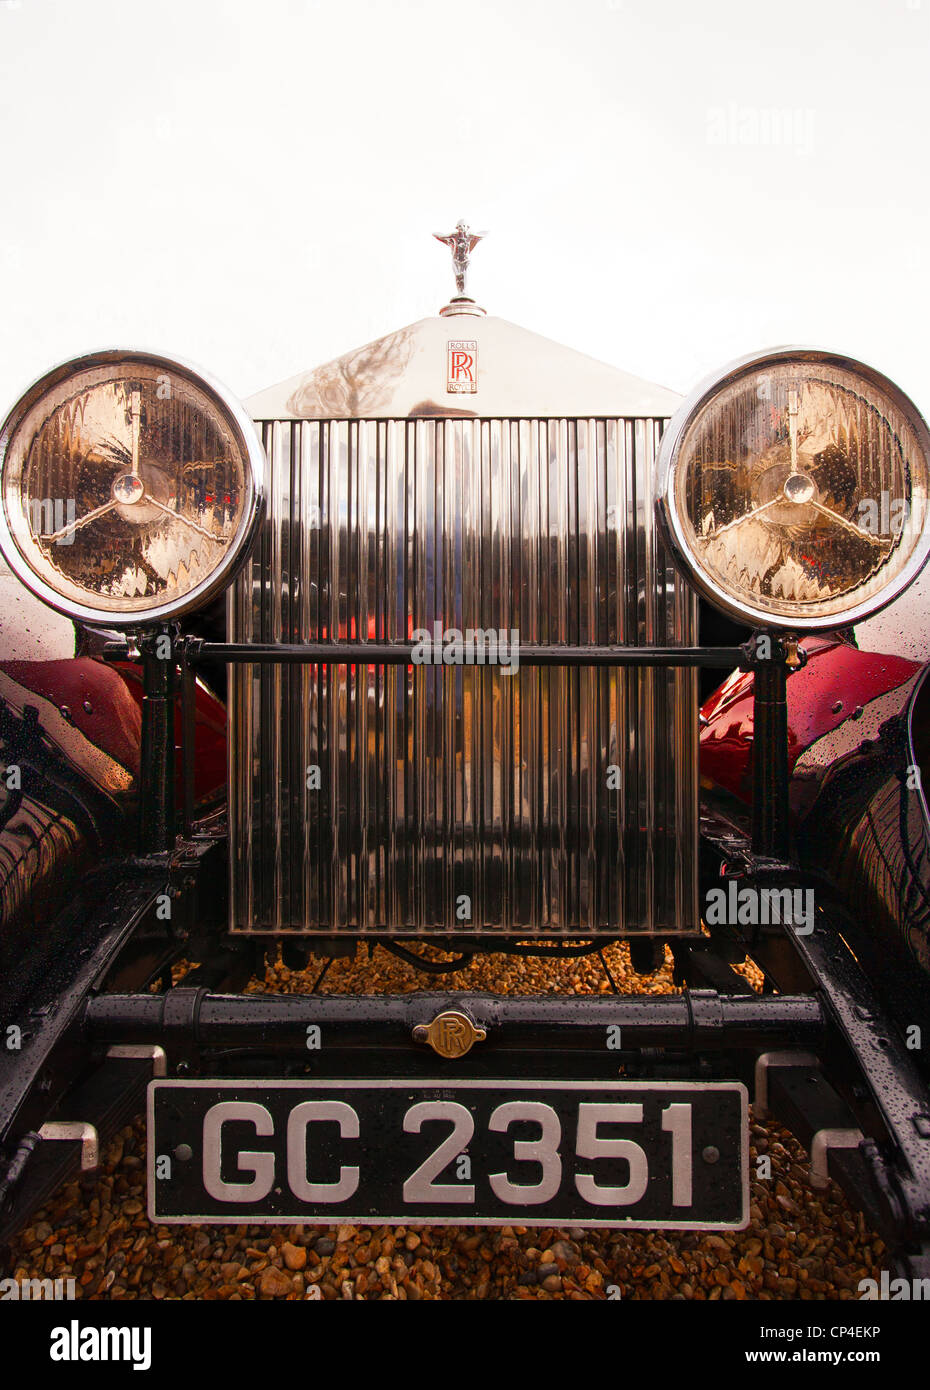 Headlights and radiator of a vintage Rolls Royce car. I was told it ...